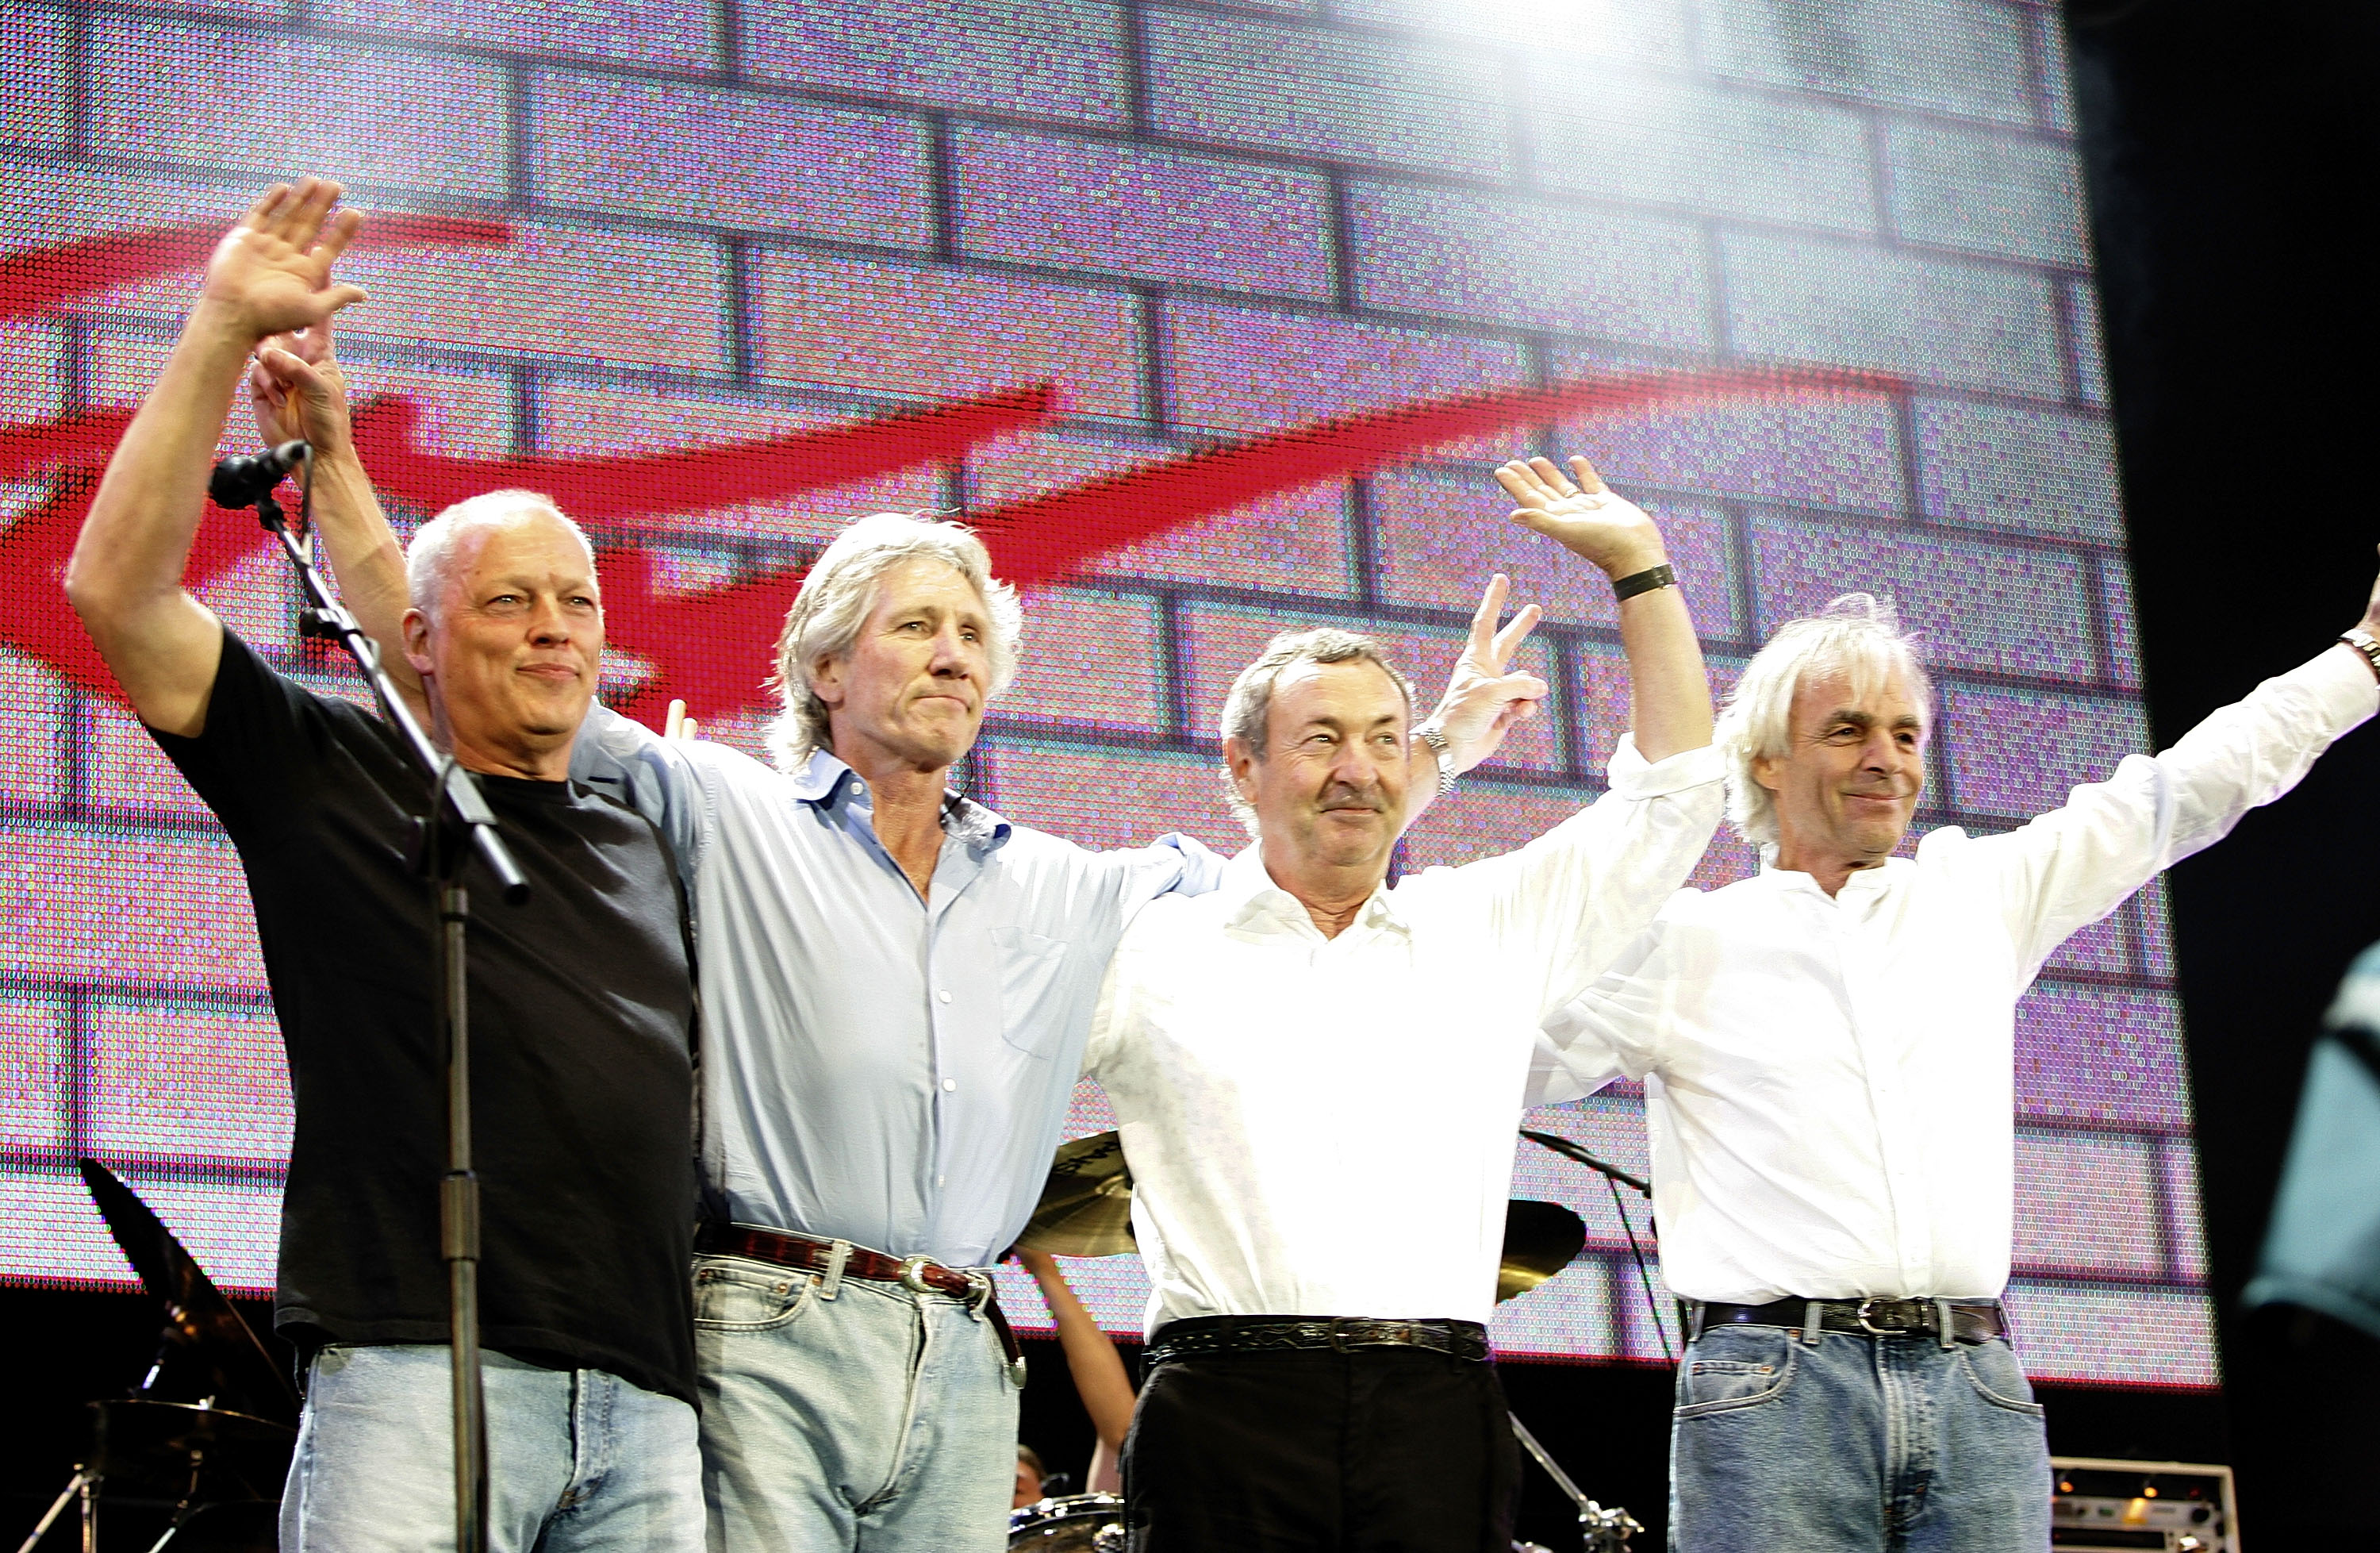 1551105514485_3.jpg - Da sinistra a destra: David Gilmour, Roger Waters, Nick Mason and Rick Wright. I Pink Floyd oggi